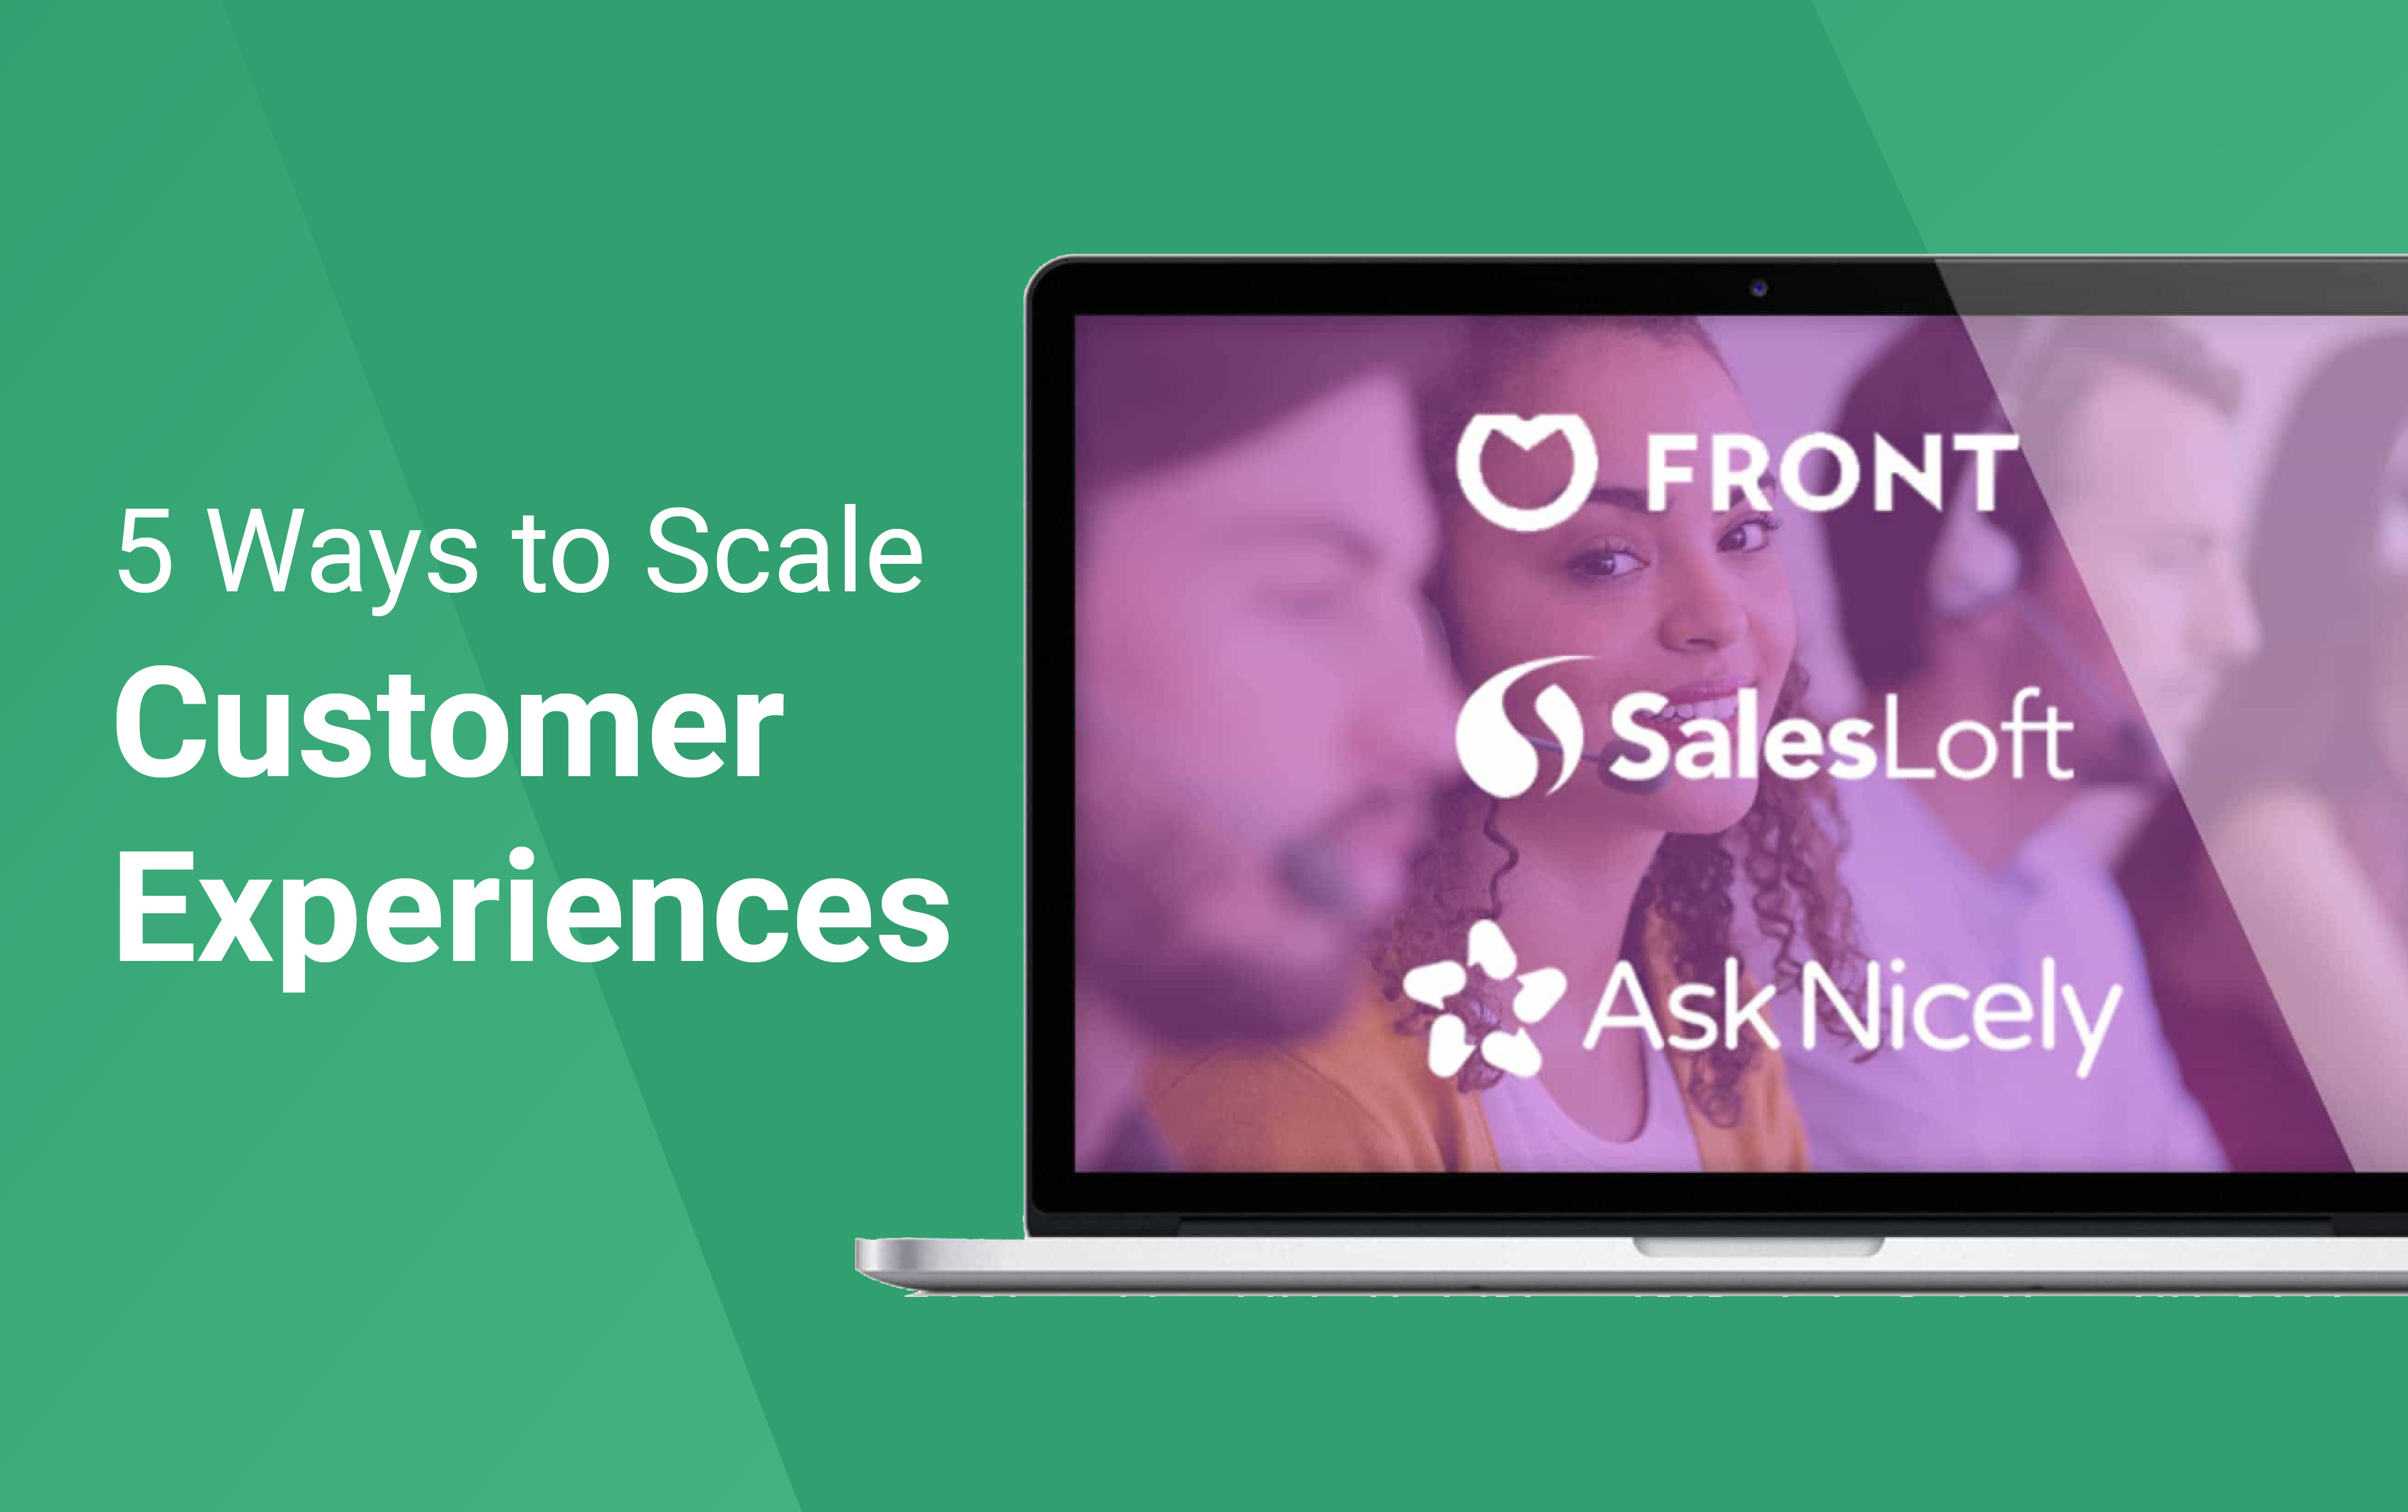 Create amazing customer experiences and maintain that magic at scale.